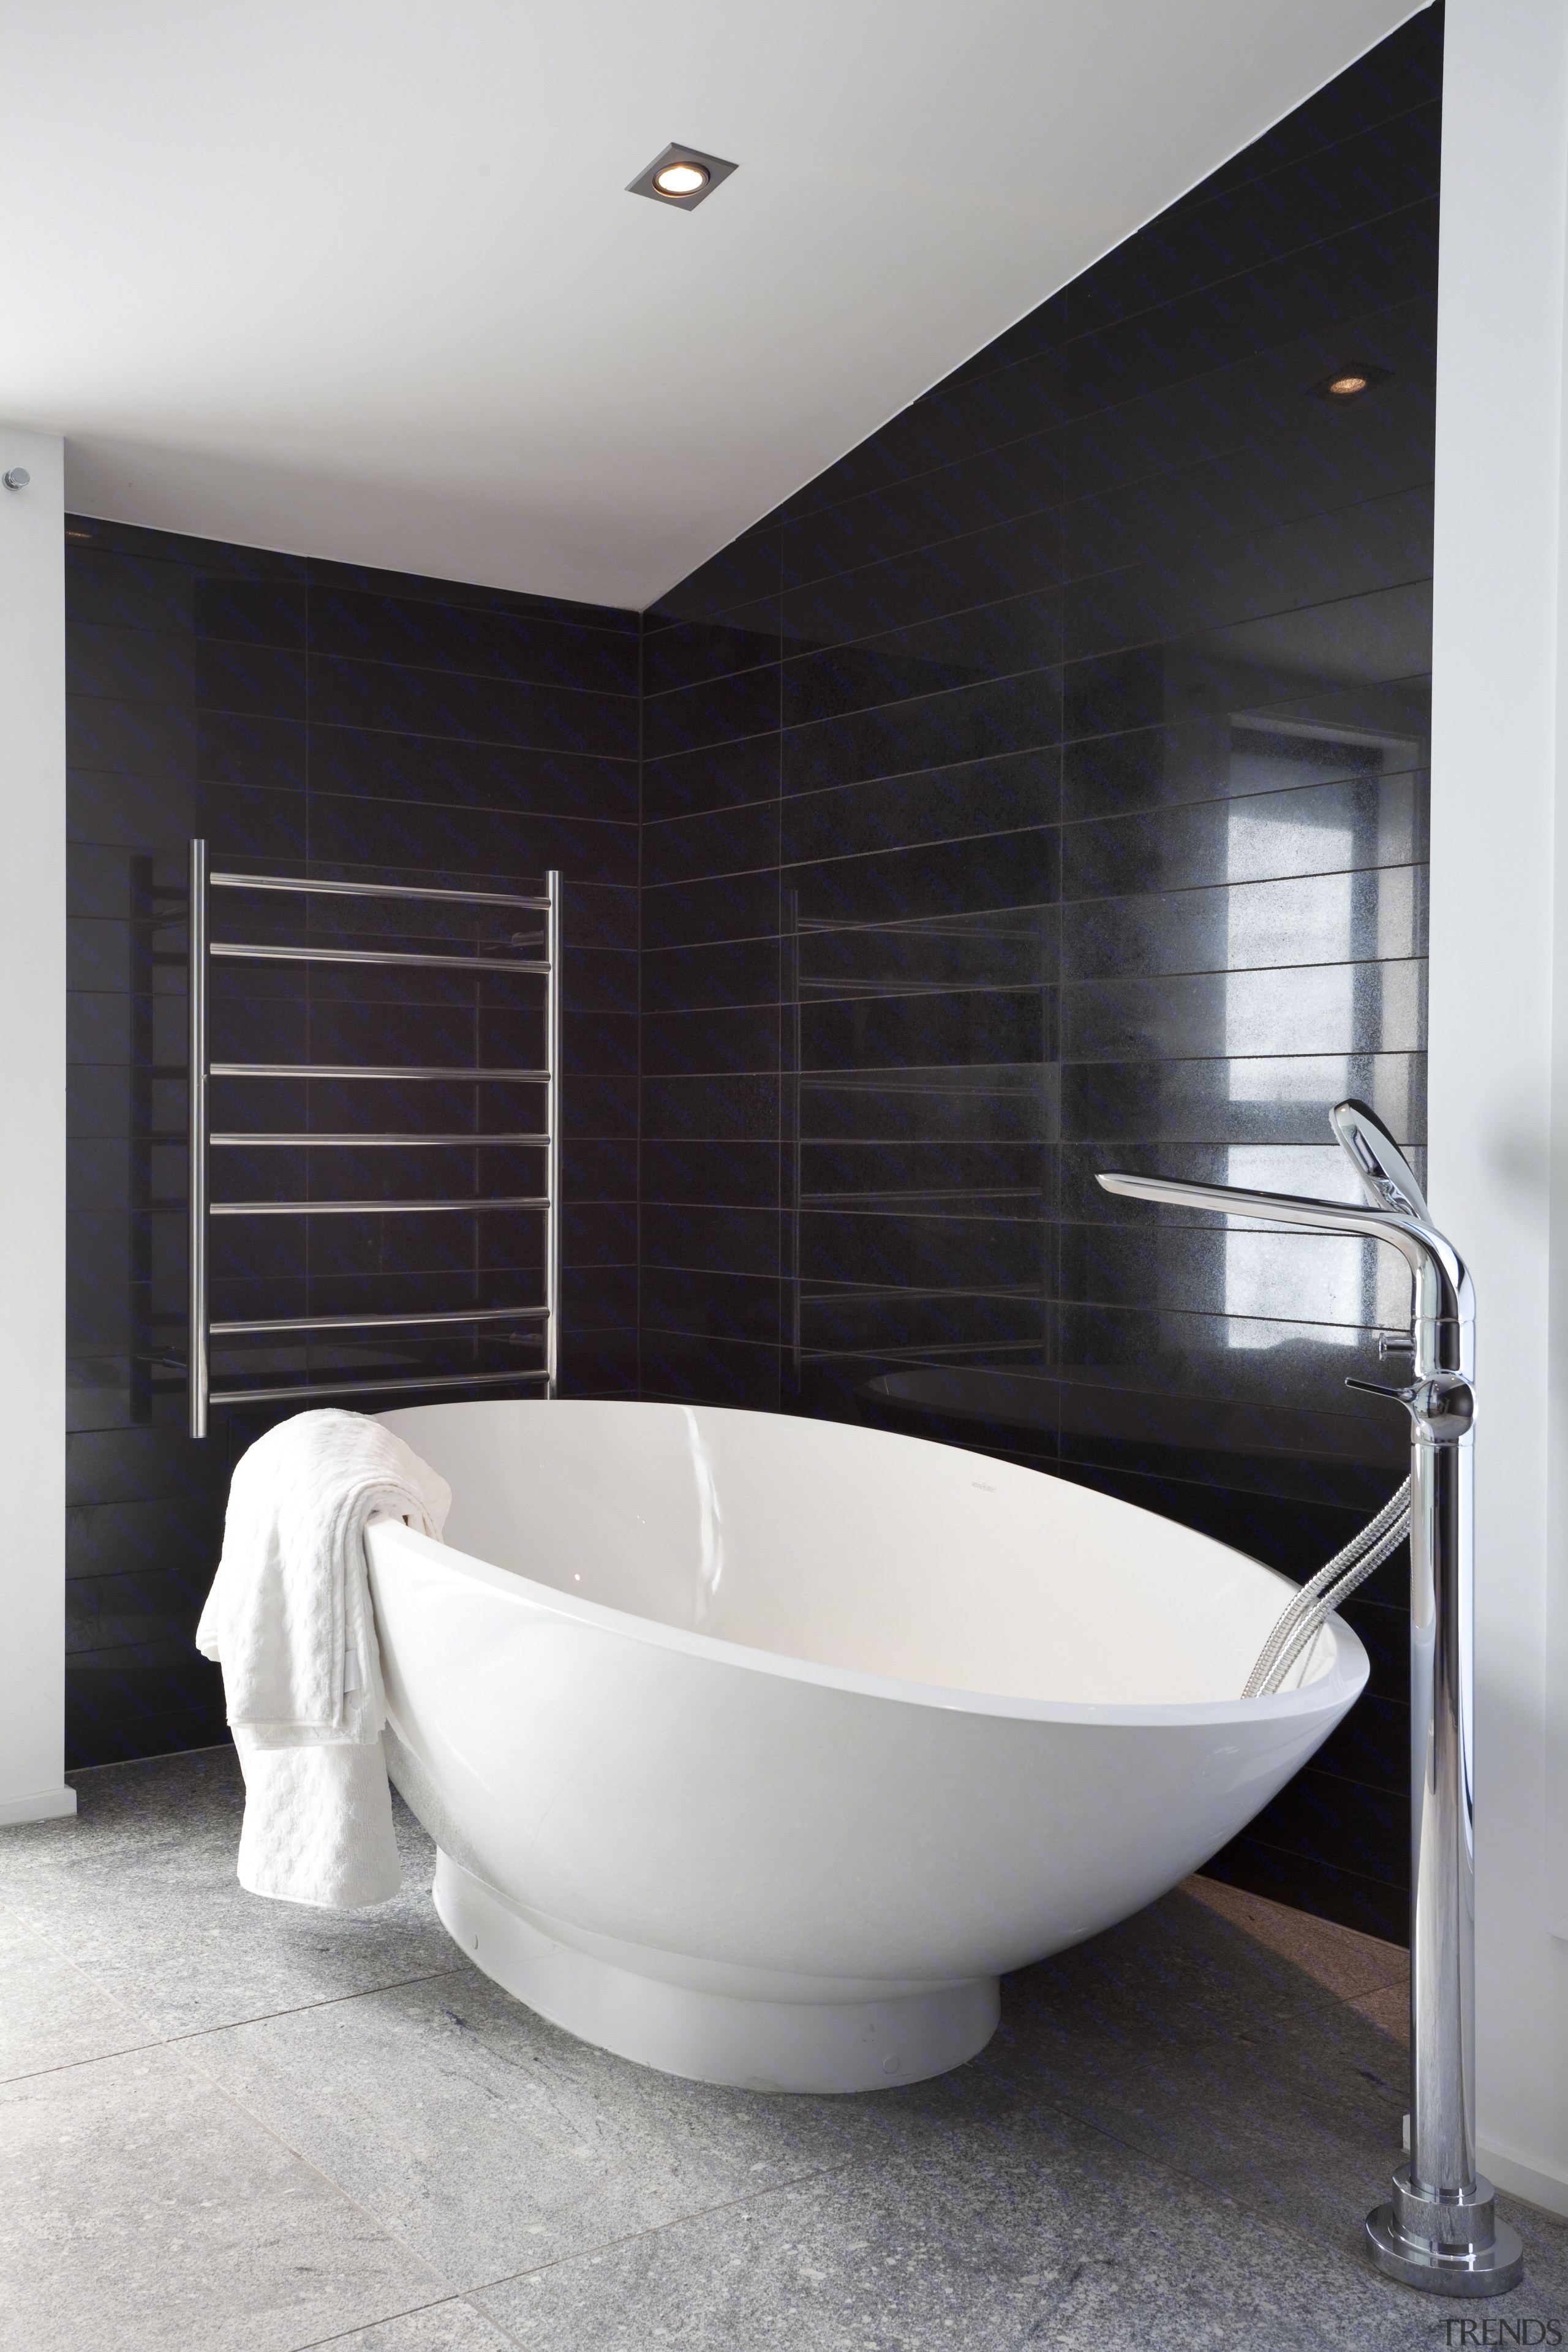 View Of Bathroom With Black Tiled Walls And Contemporary Oval